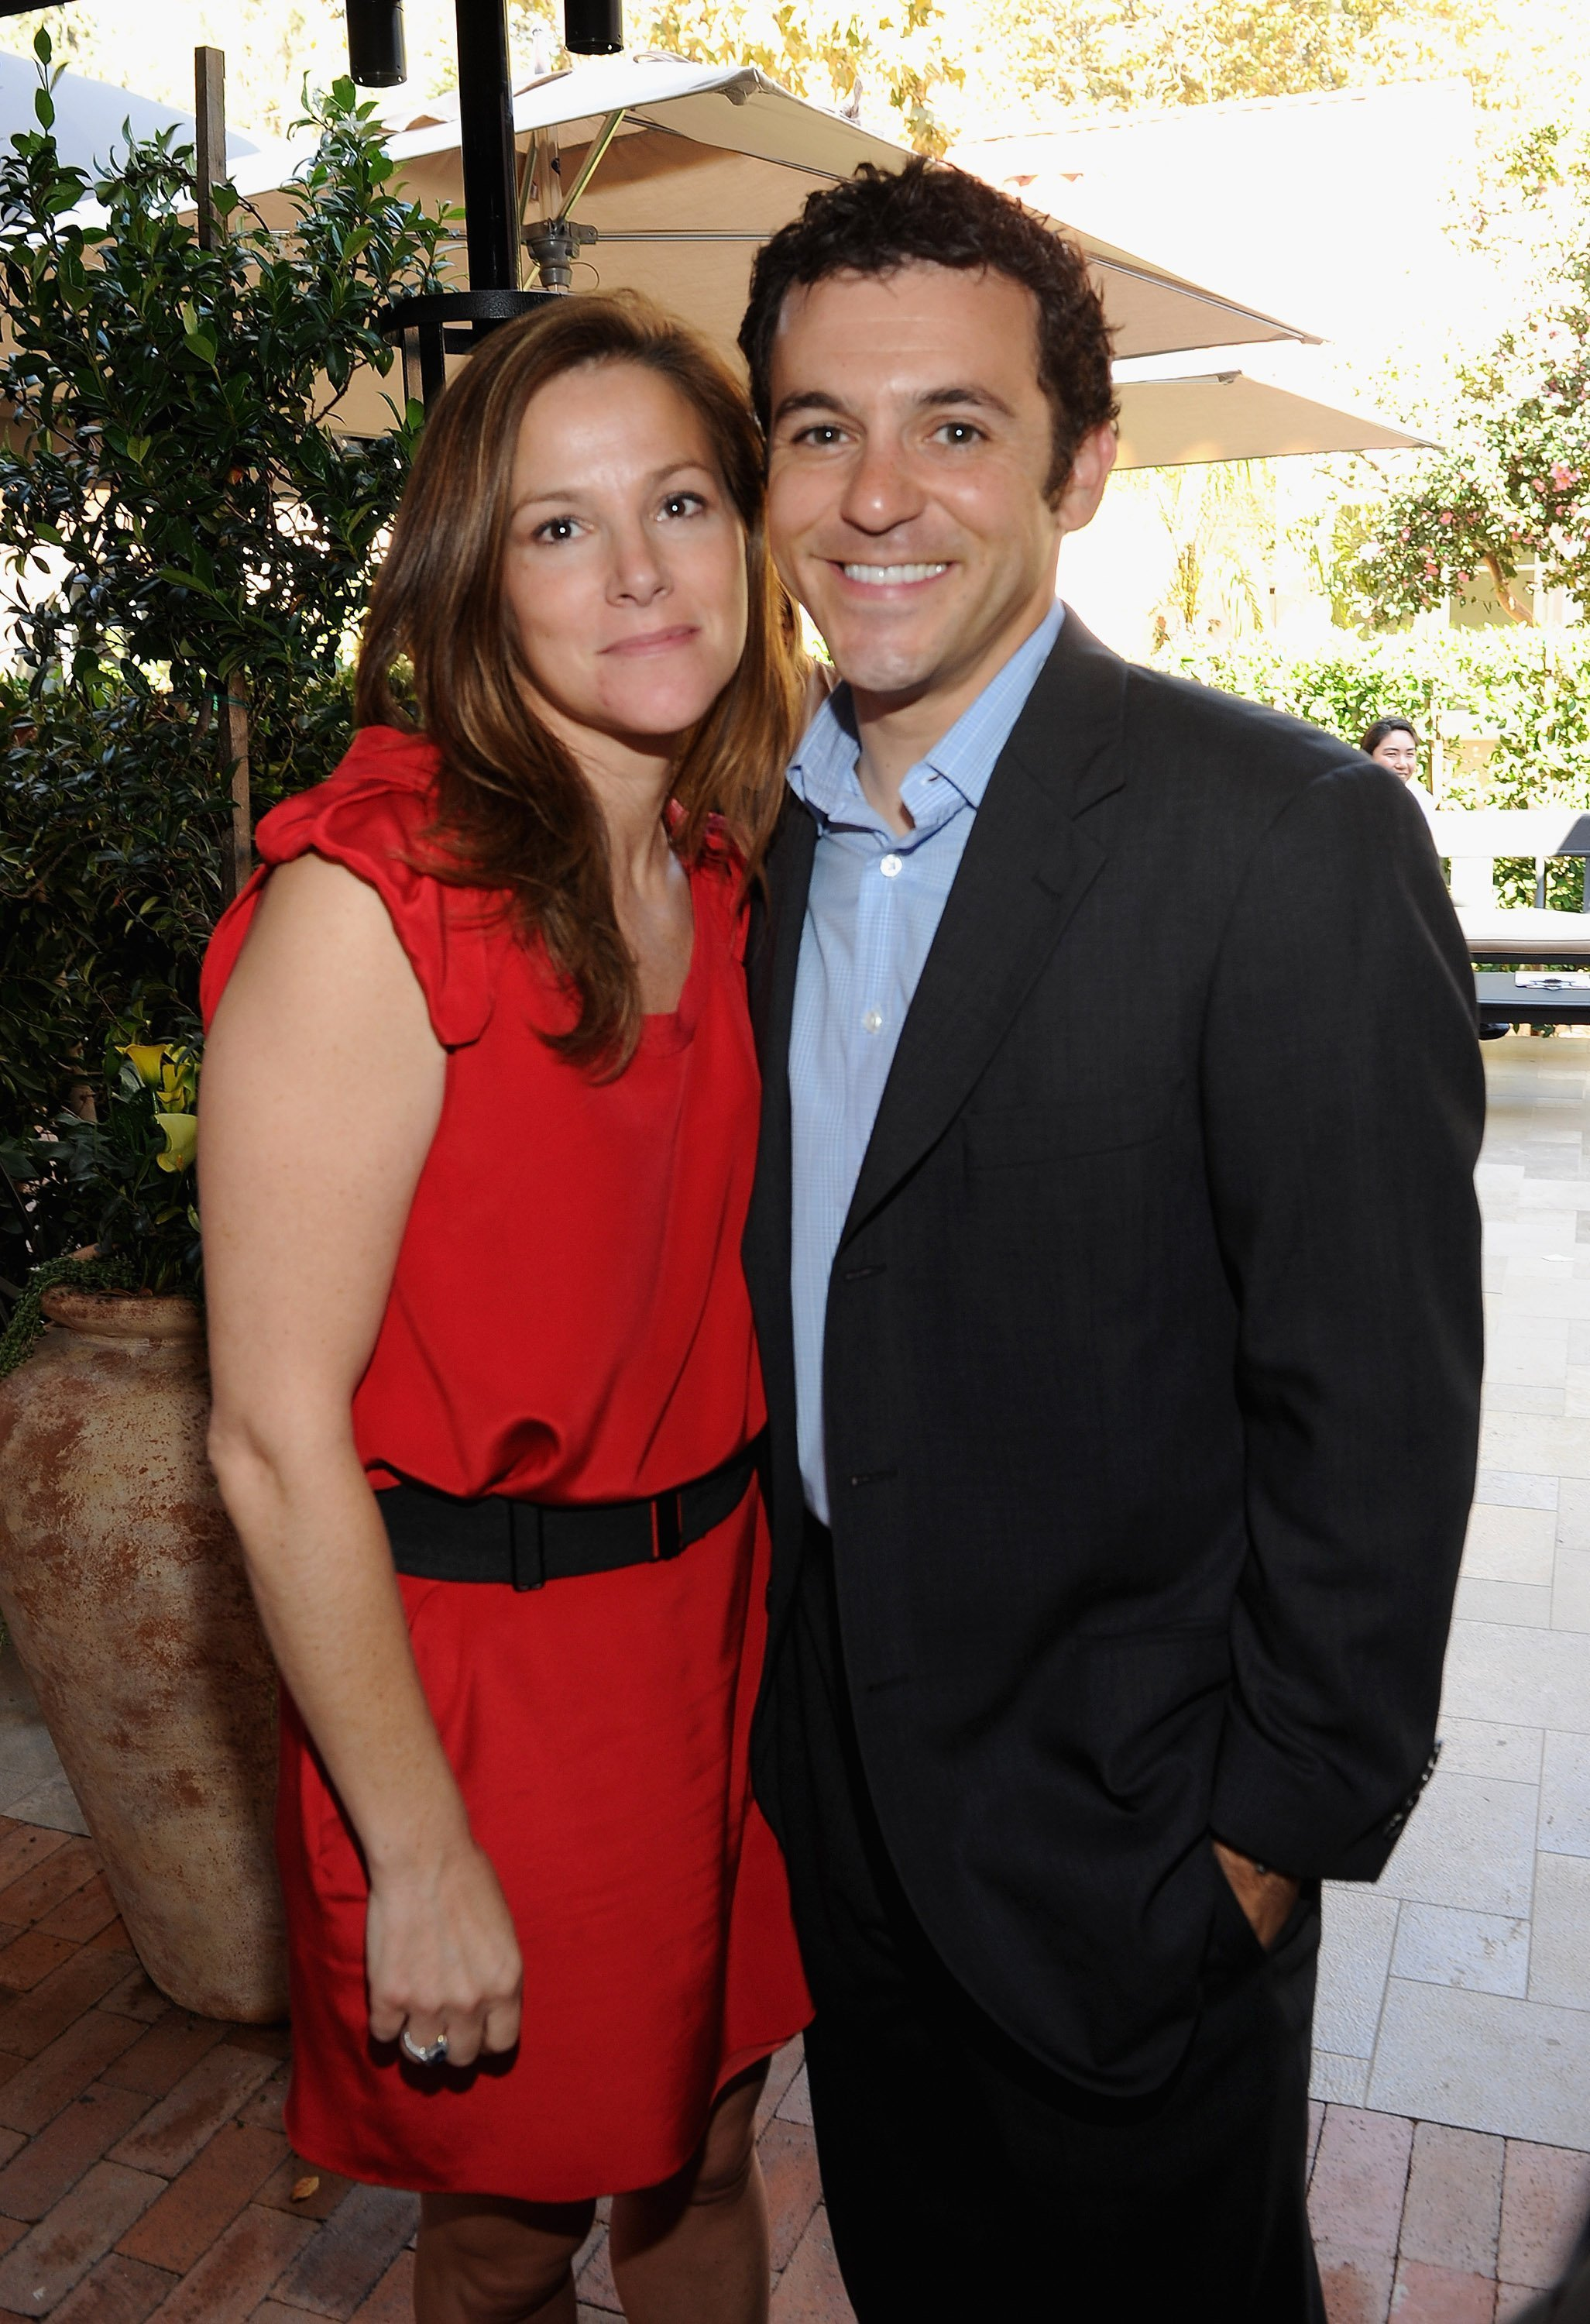 Fred Savage and Jennifer Lynn Stone on October 16, 2011 in Belair, California | Source: Getty Images